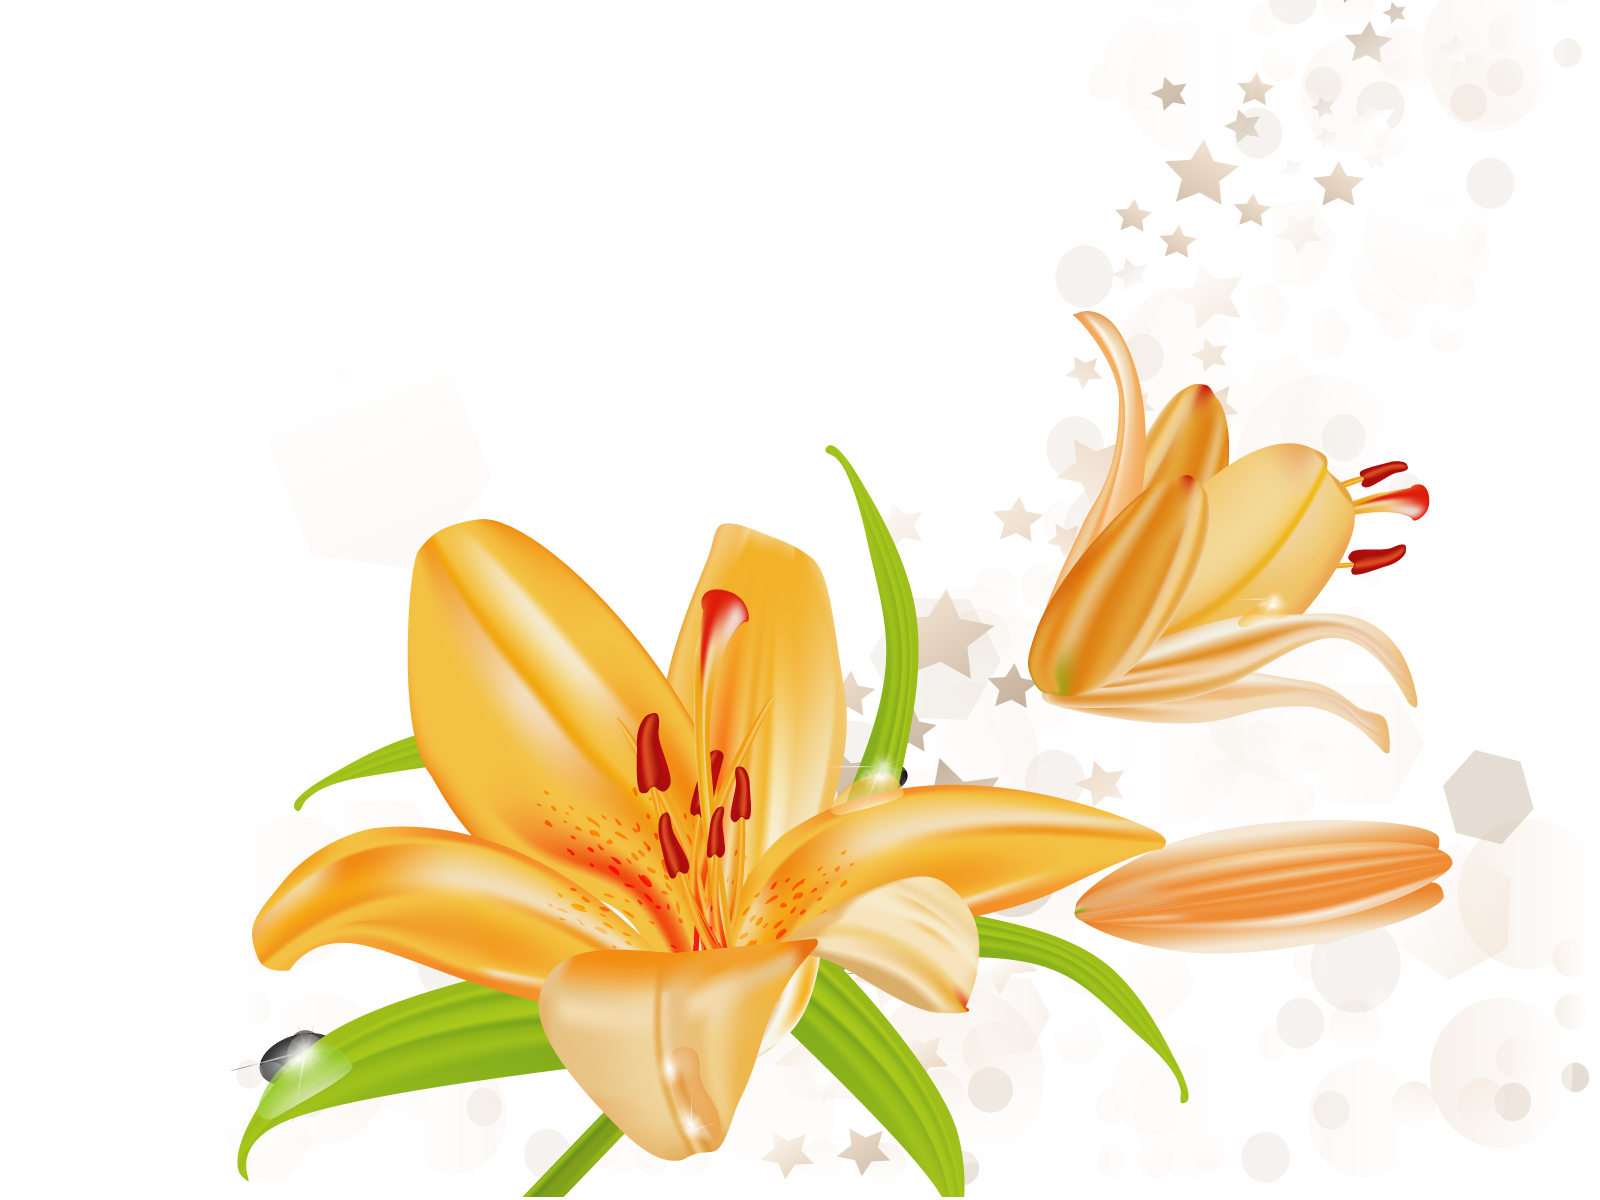 Flowers ppt backgrounds page 7 of 9 ppt grounds lily flowers illustration powerpoint dhlflorist Images